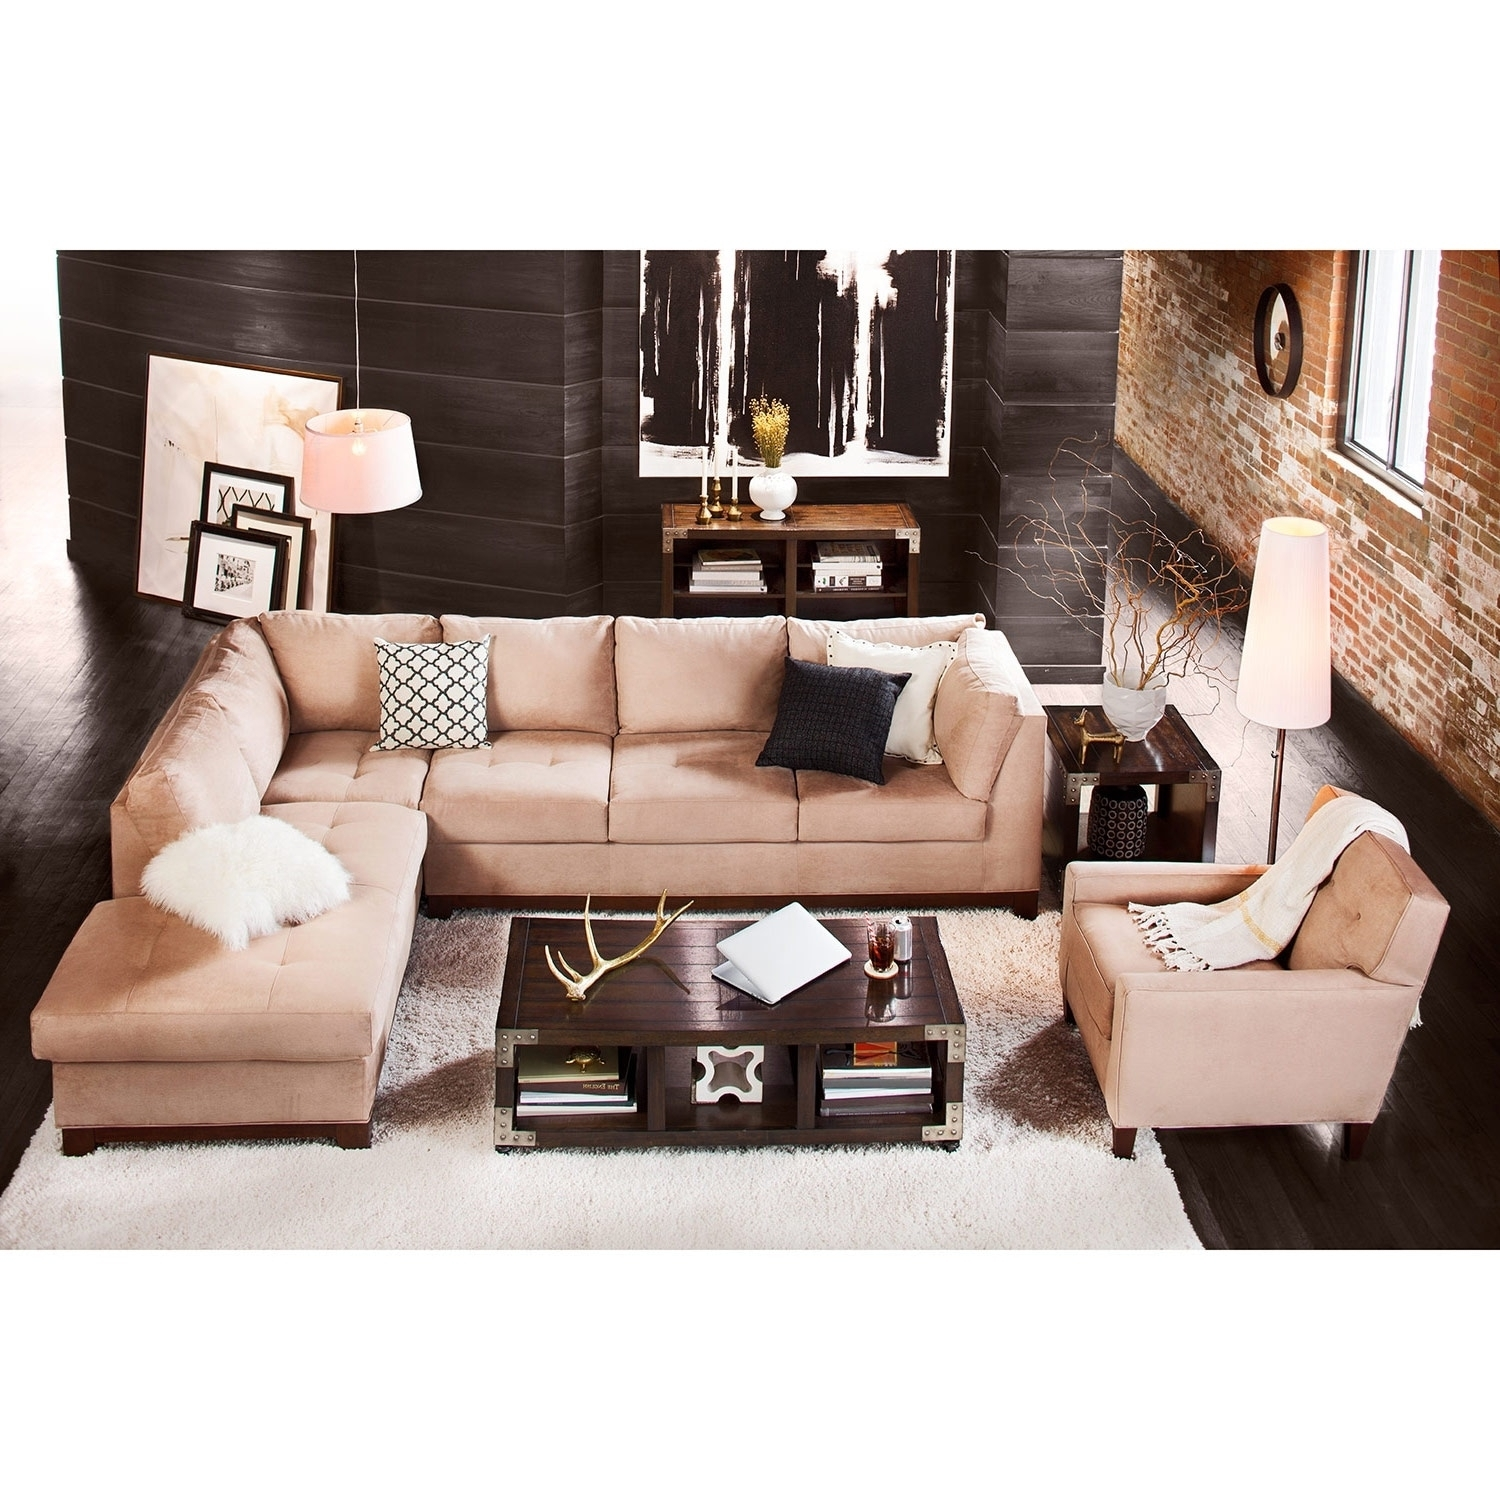 Soho 2 Piece Sectional With Left Facing Chaise – Cobblestone | Value Regarding Arrowmask 2 Piece Sectionals With Sleeper & Left Facing Chaise (Image 23 of 25)